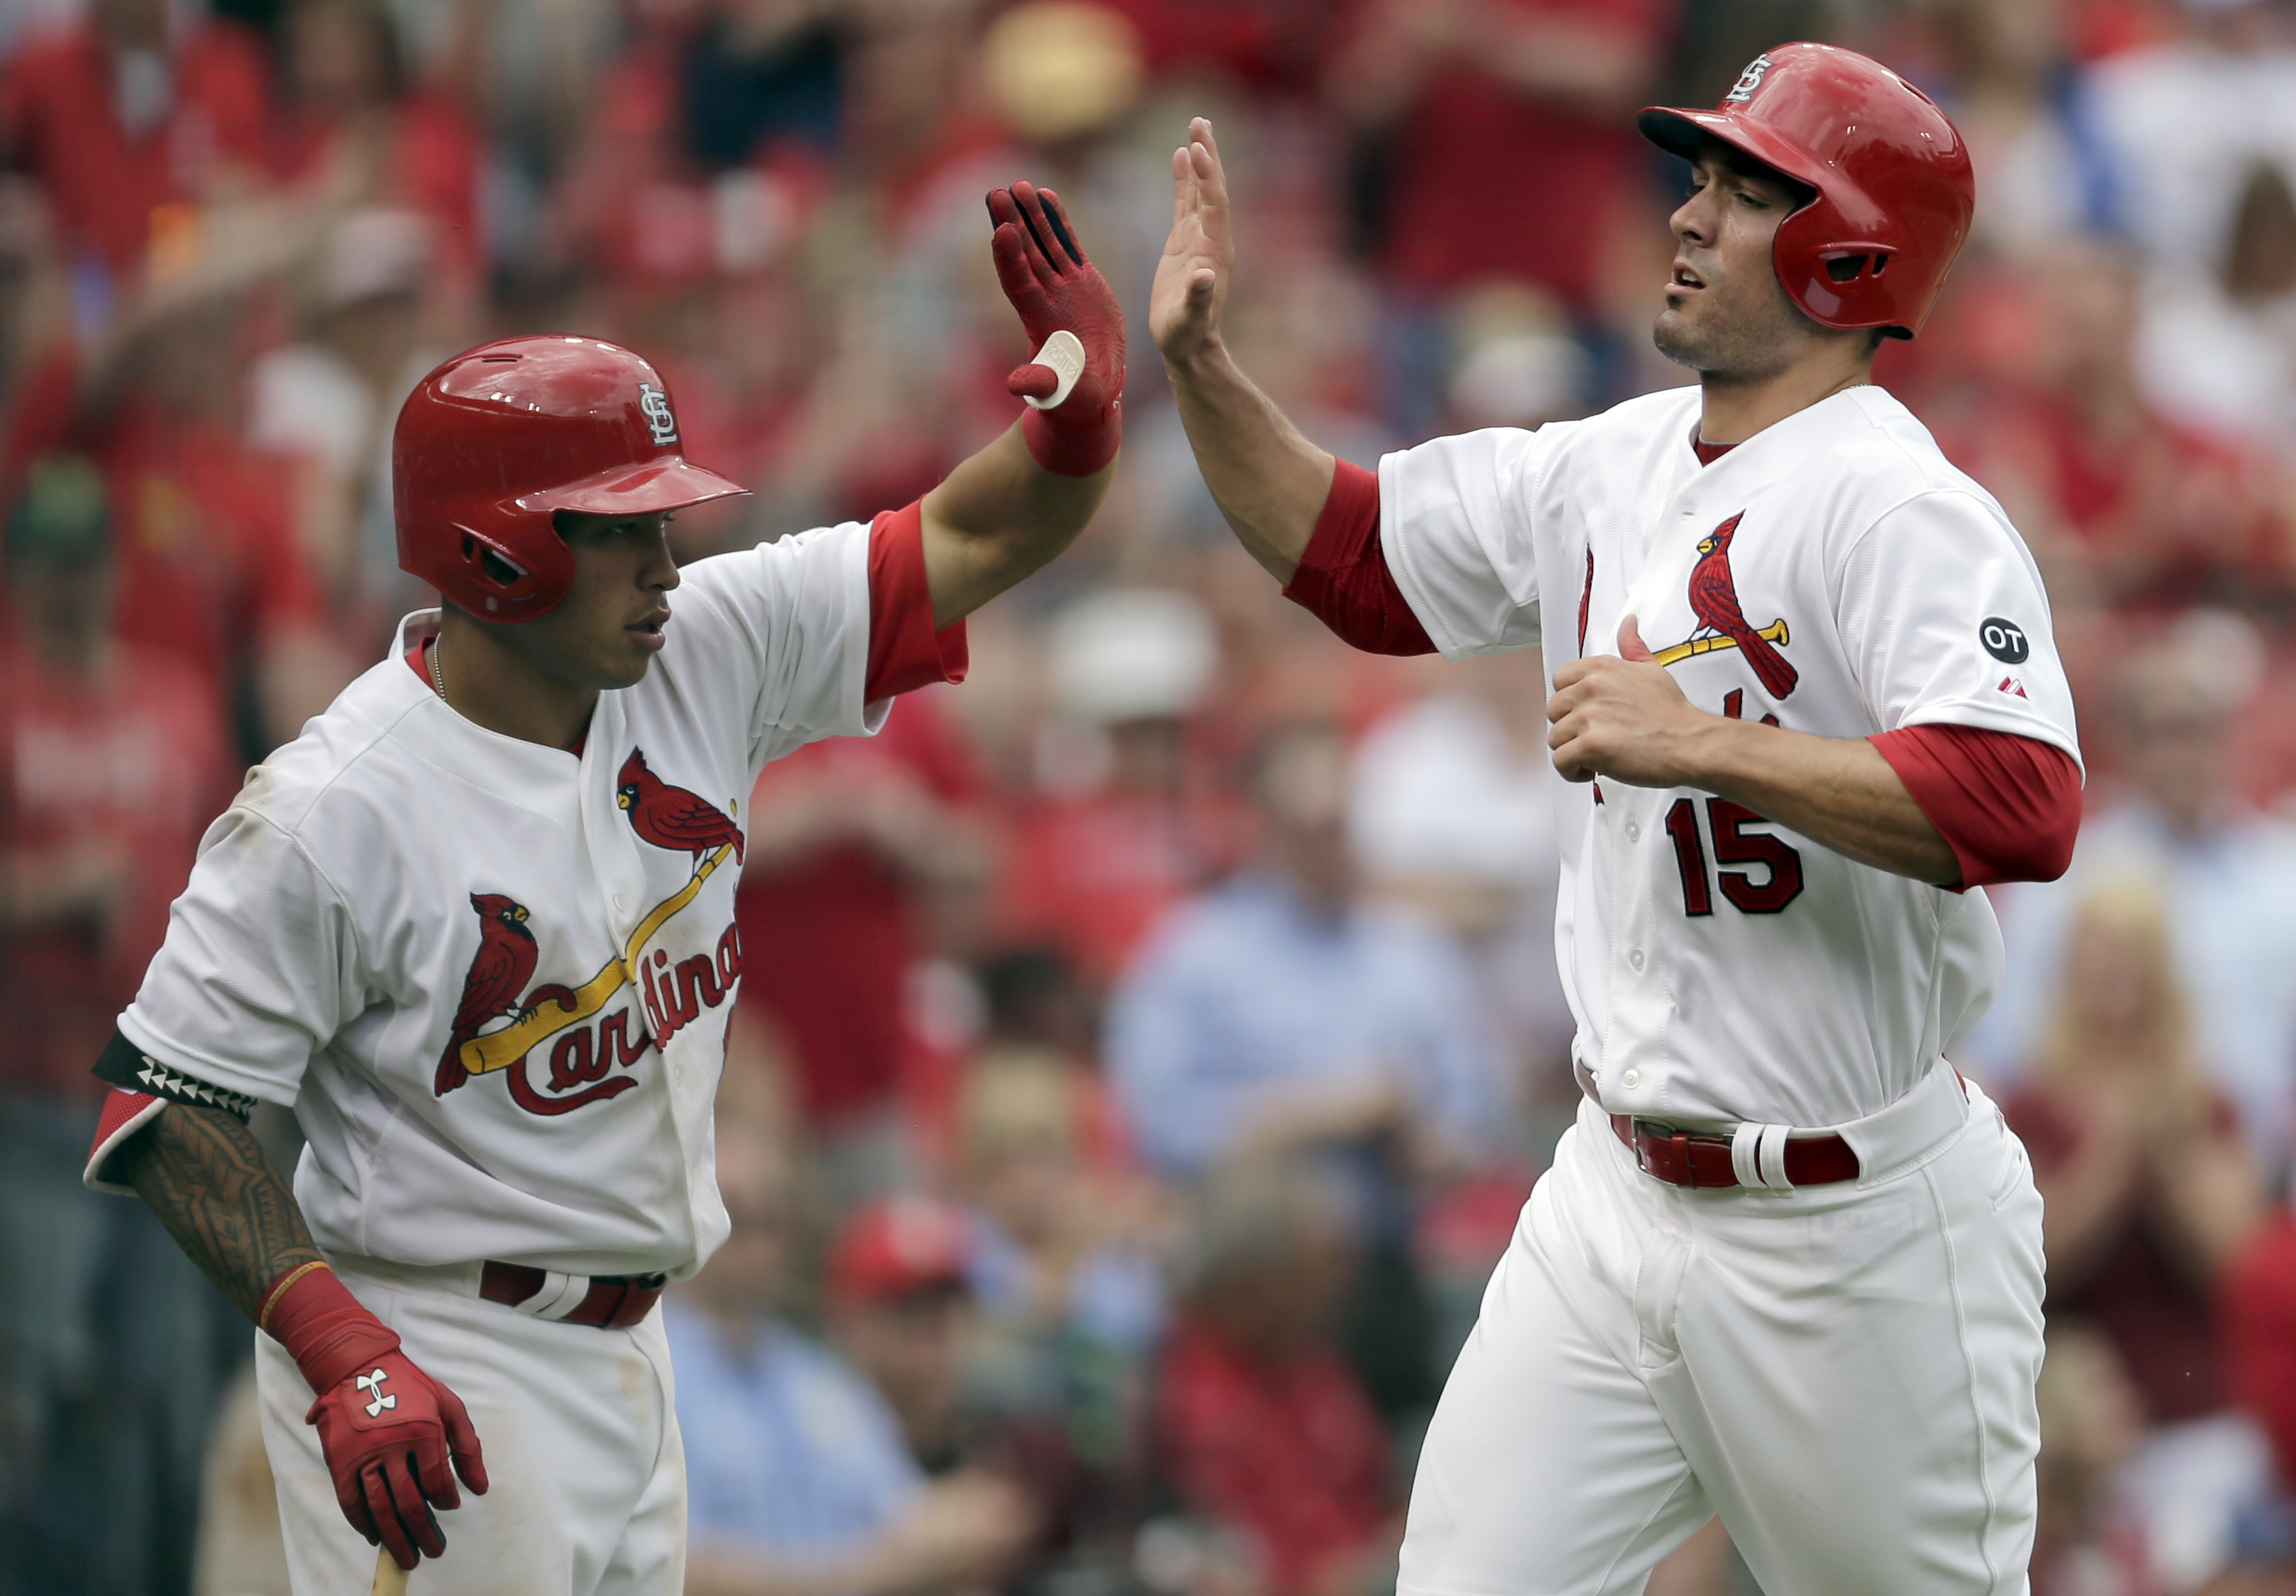 St. Louis Cardinals' Randal Grichuk, right, is congratulated by teammate Kolten Wong after scoring on a single by Yadier Molina during the eighth inning of a baseball game against the Milwaukee Brewers Thursday, April 16, 2015, in St. Louis. (AP Photo/Jef